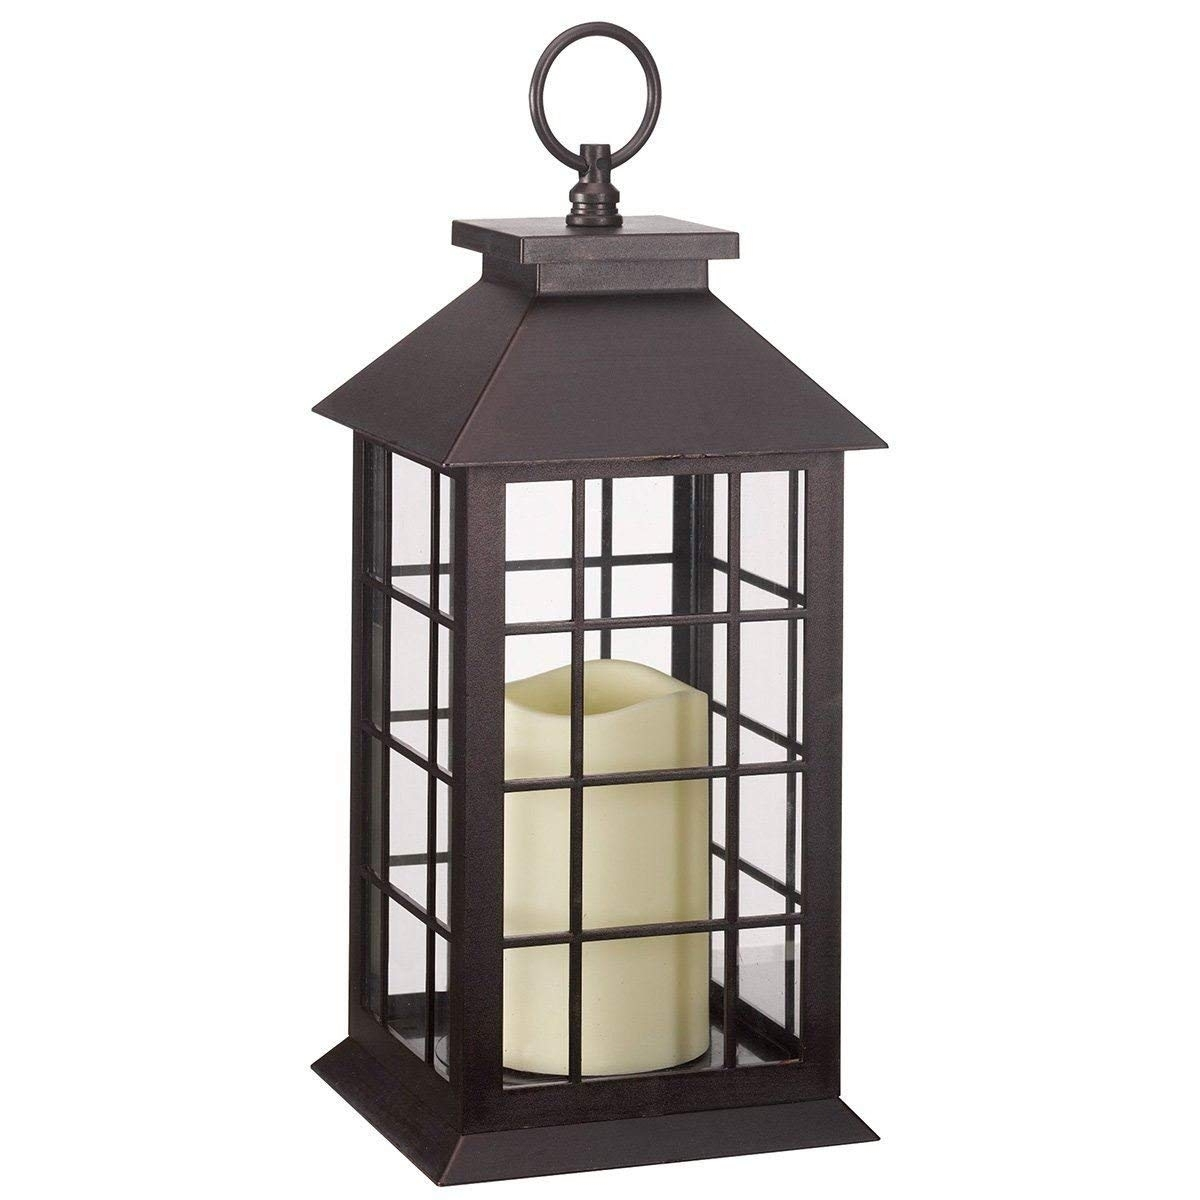 Crazygadget Battery Operated Window Lantern With Timer Led Candle regarding Outdoor Lanterns With Timers (Image 8 of 20)